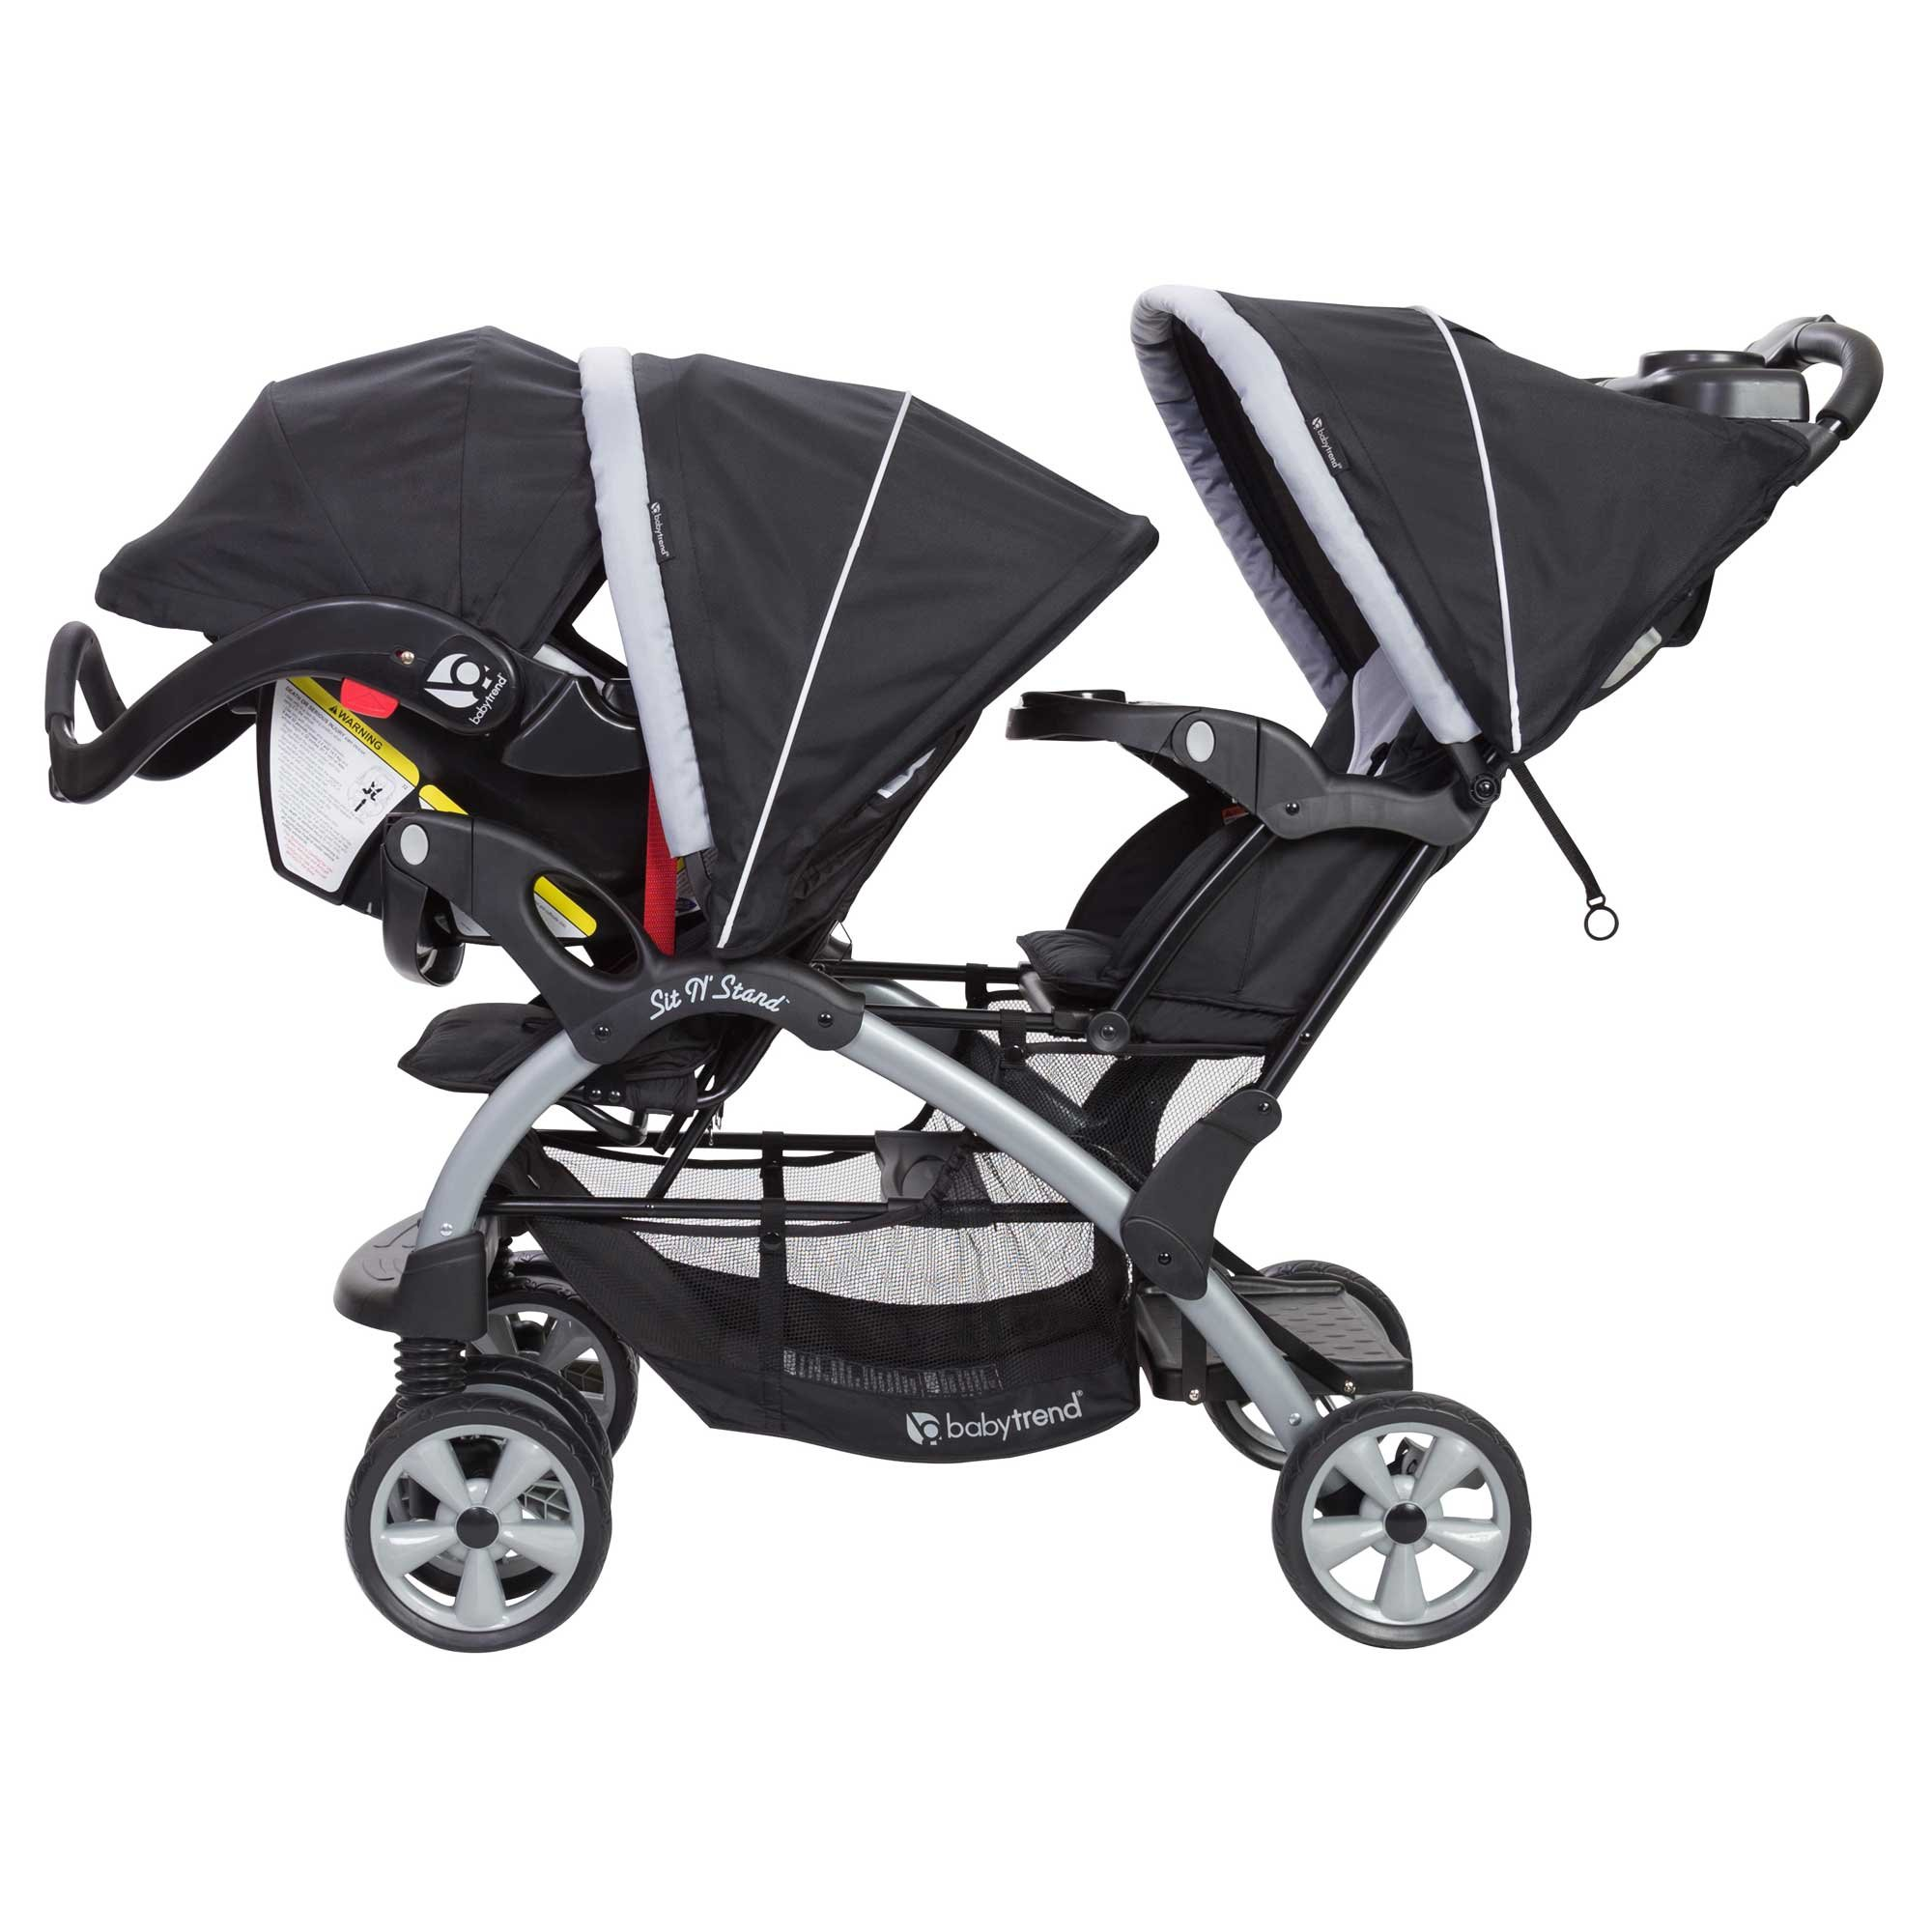 Baby Trend Sit N Stand Tandem Stroller + Infant Car Seat Travel System, Stormy by Baby Trend (Image #4)